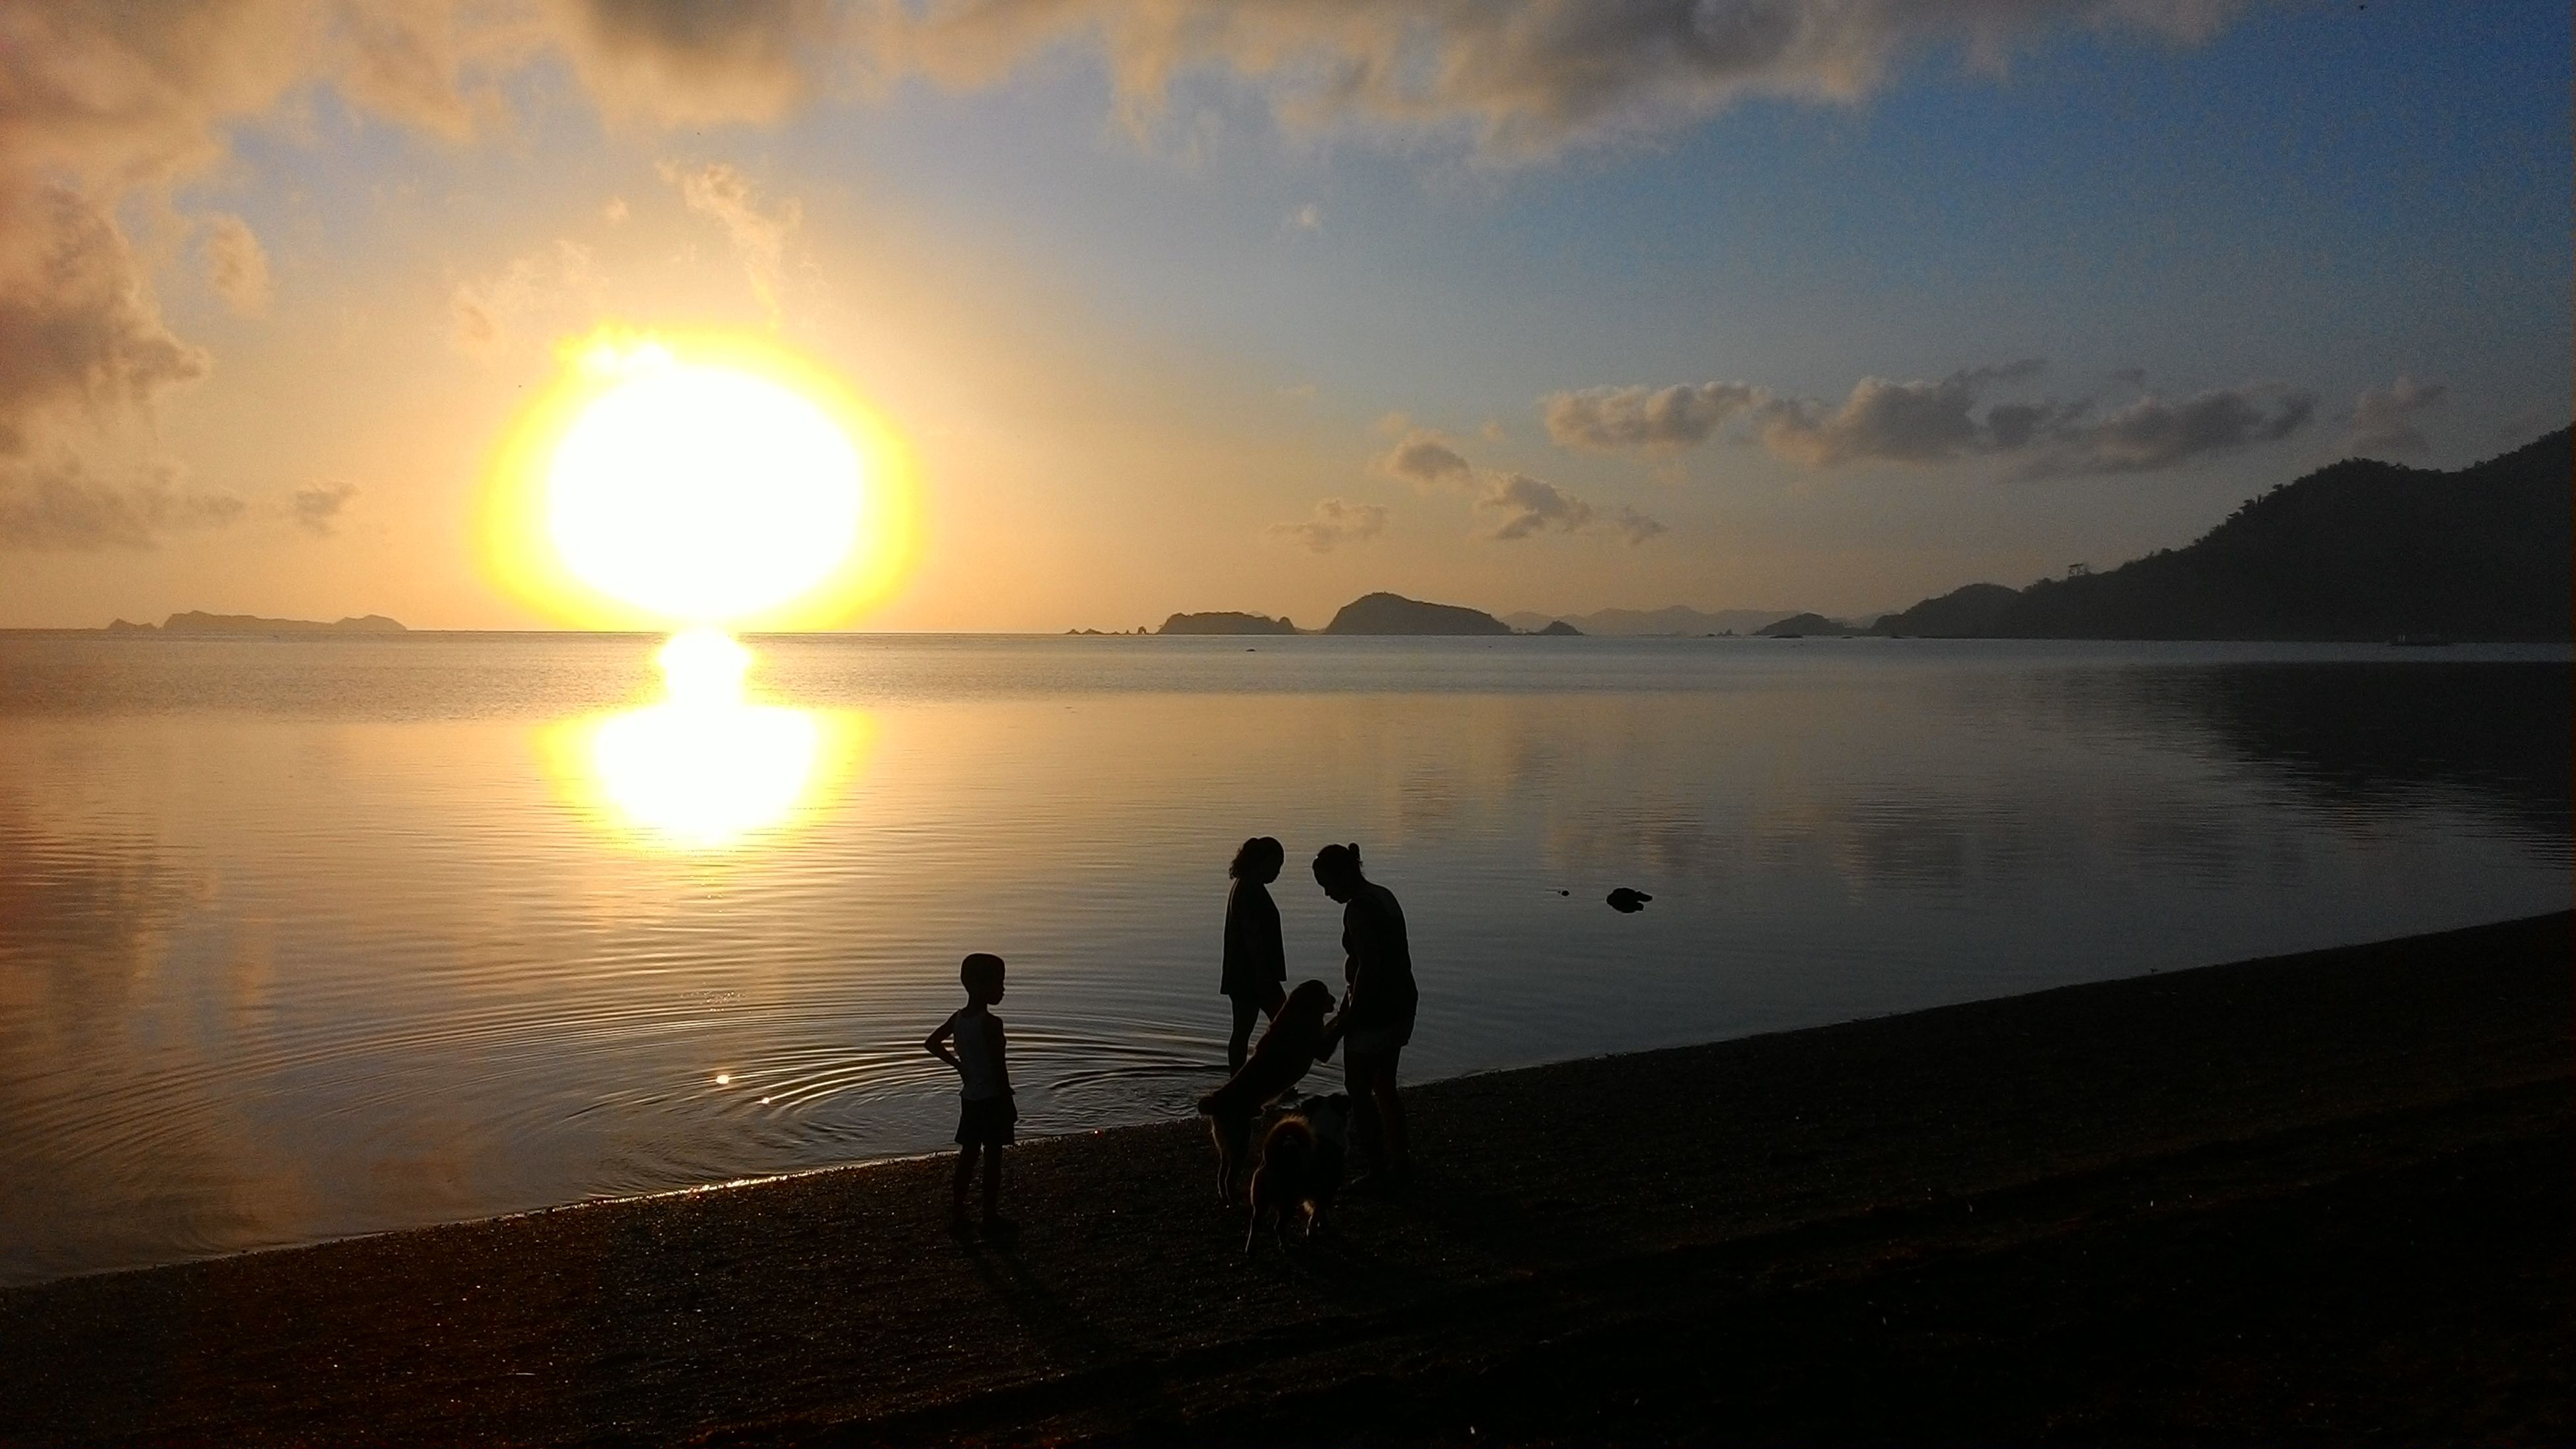 sunset, water, silhouette, nature, beauty in nature, scenics, sky, sun, sea, reflection, real people, tranquility, tranquil scene, lifestyles, togetherness, vacations, men, sunlight, leisure activity, beach, cloud - sky, outdoors, standing, horizon over water, boys, two people, childhood, people